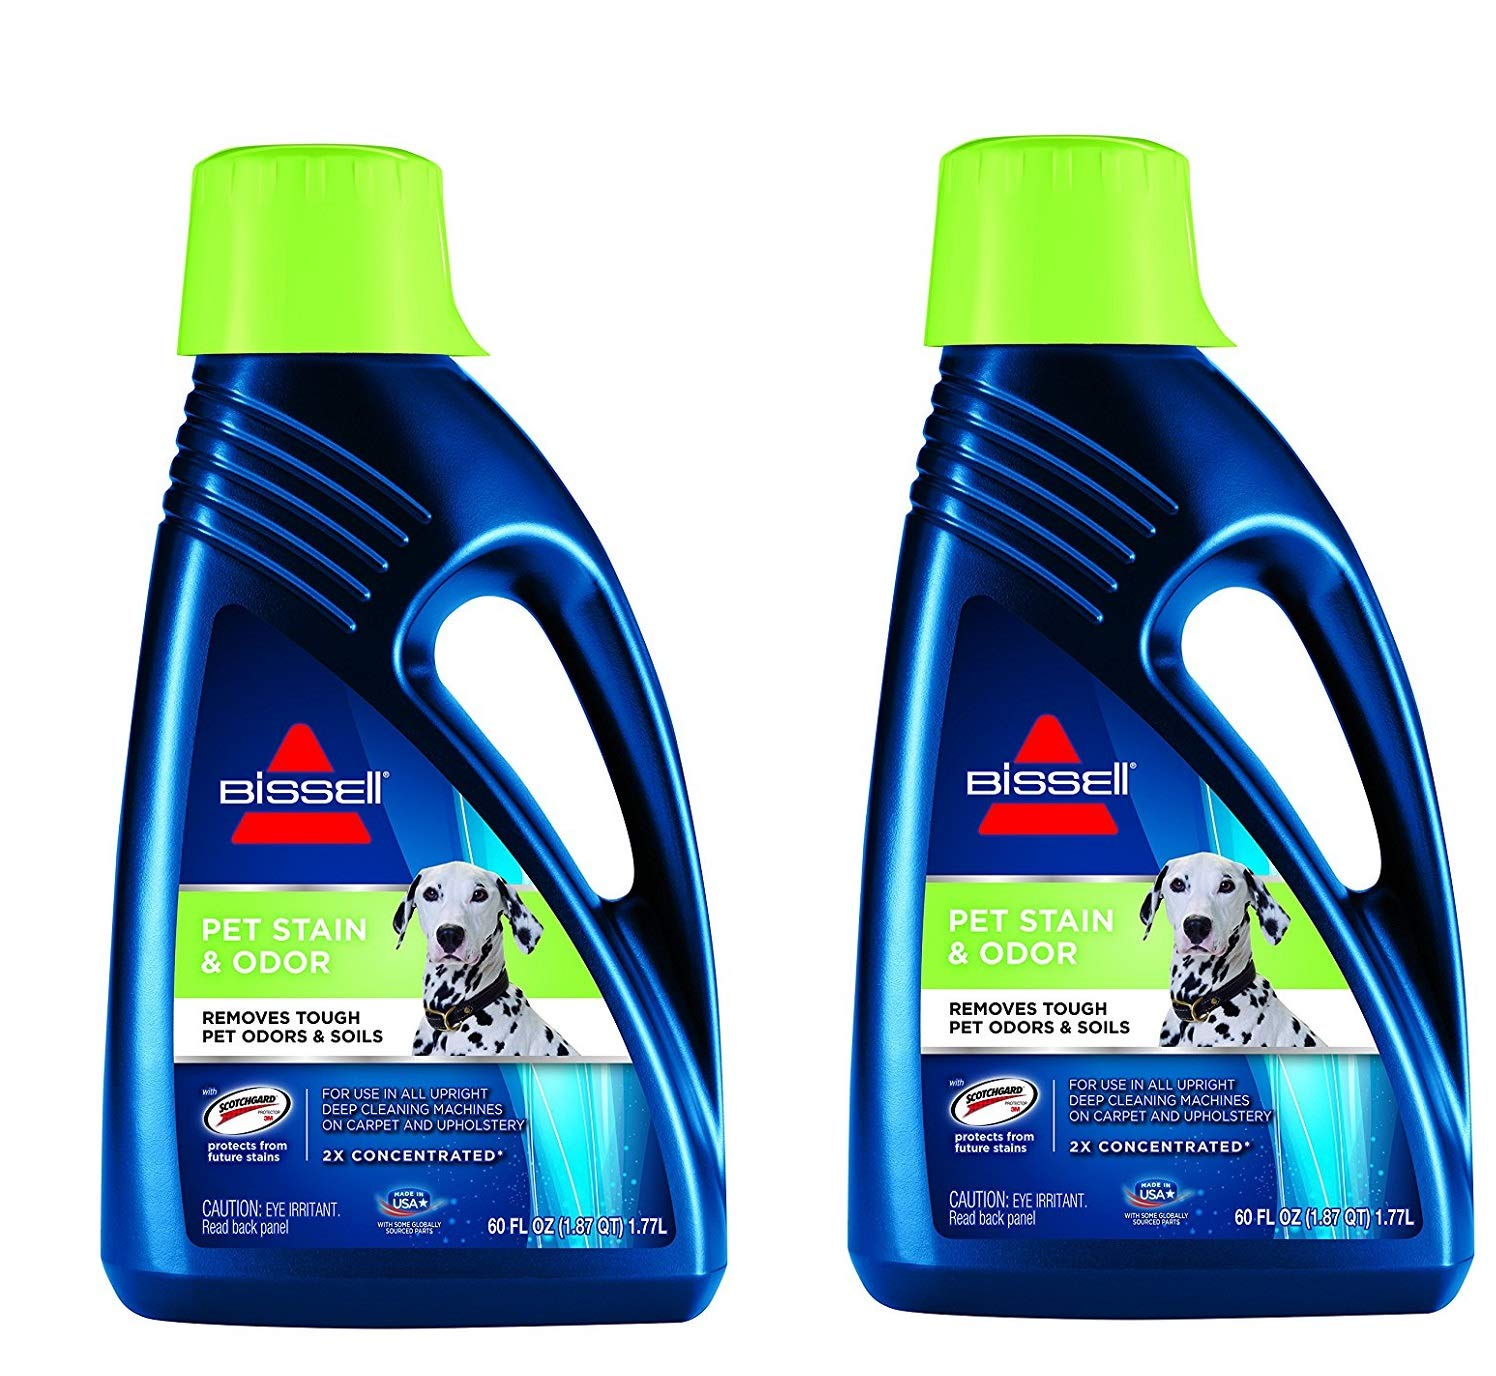 Bissell 2X Pet Stain & Odor Full Size Machine Formula, 2 Bottles (60 ounces) Bissell-hx